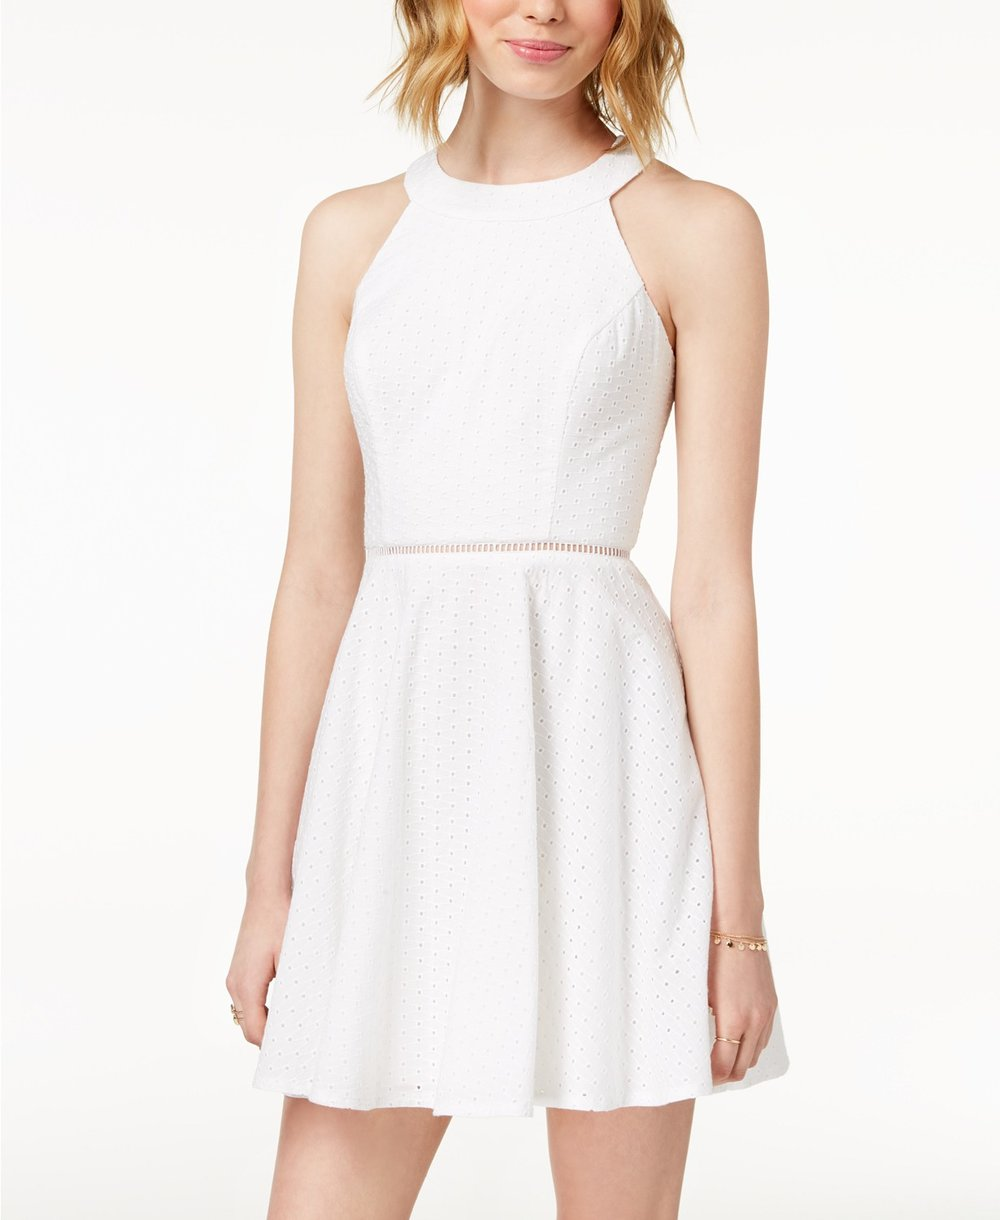 City Studios Eyelet Dress.jpeg